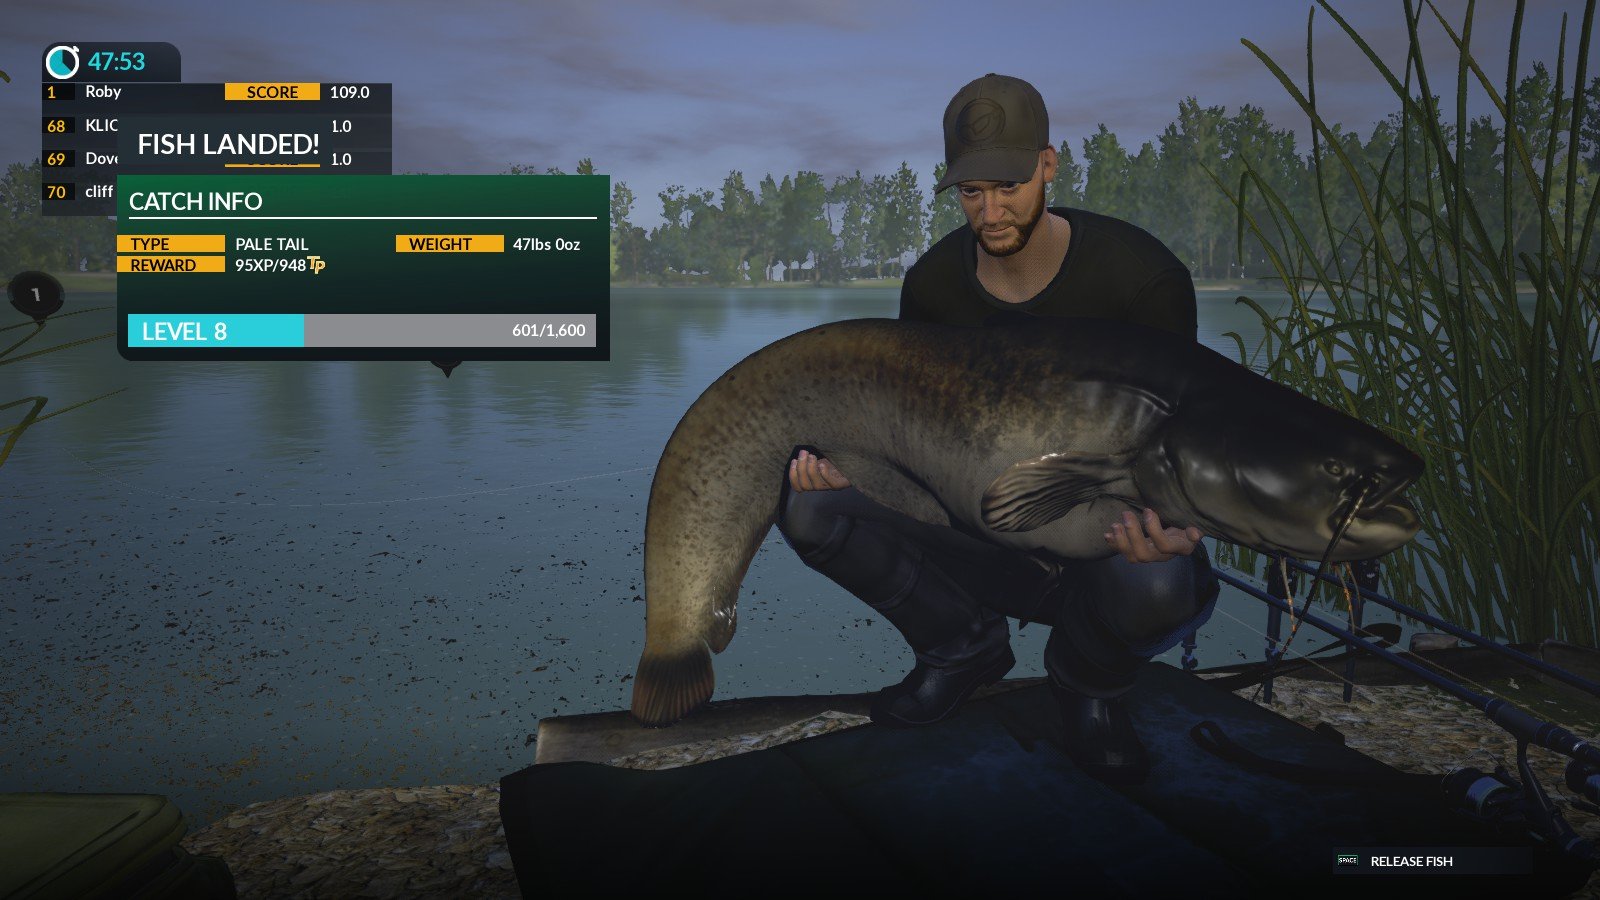 Download Fishing Hook Mod Apk-Get Free [Unlimited Mods/Powers/Money]